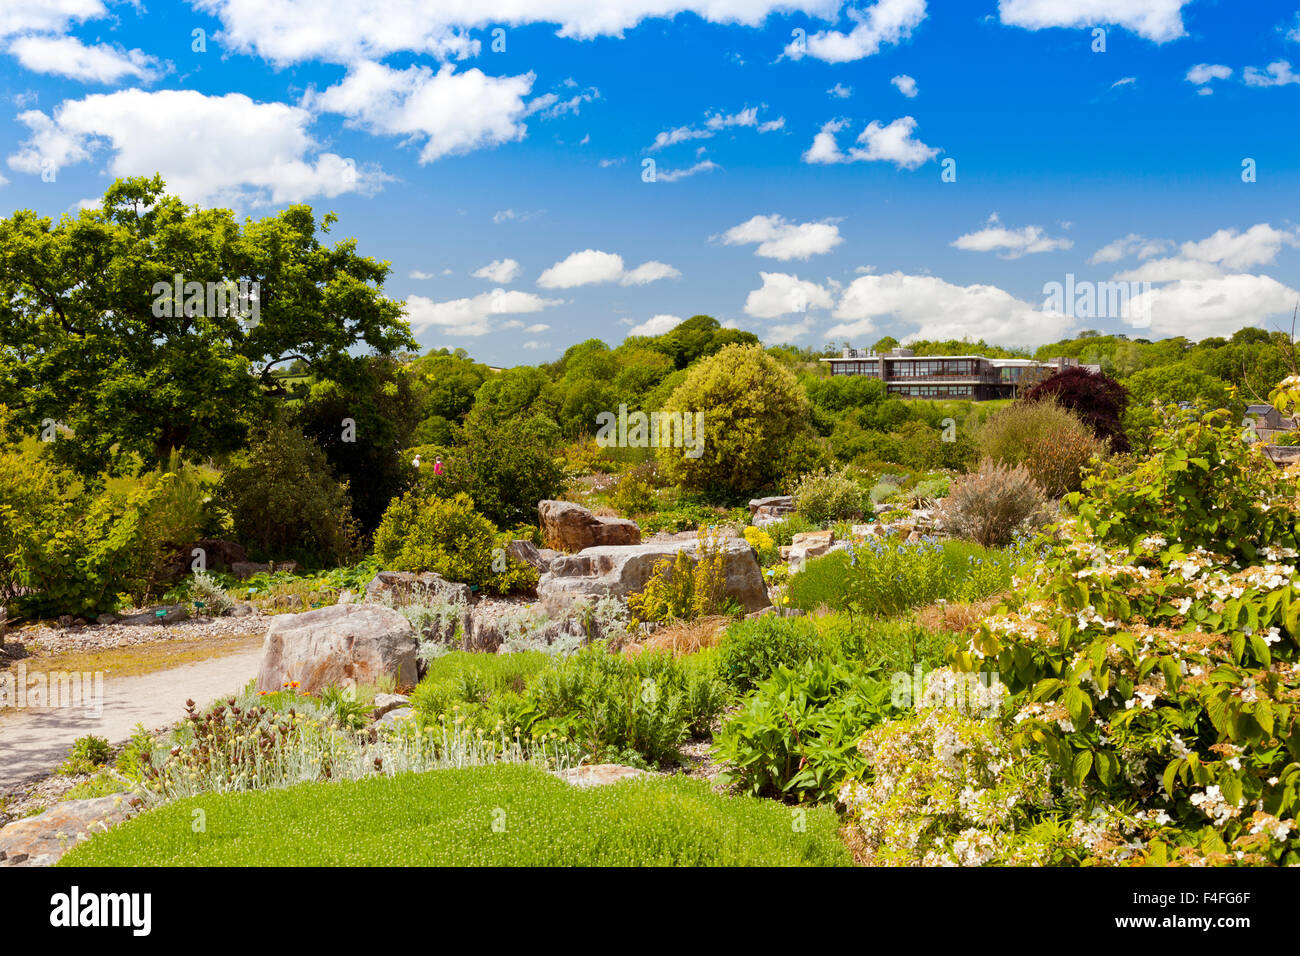 The rock garden at the National Botanical Gardens of Wales, Carmarthenshire, Wales, UK - Stock Image